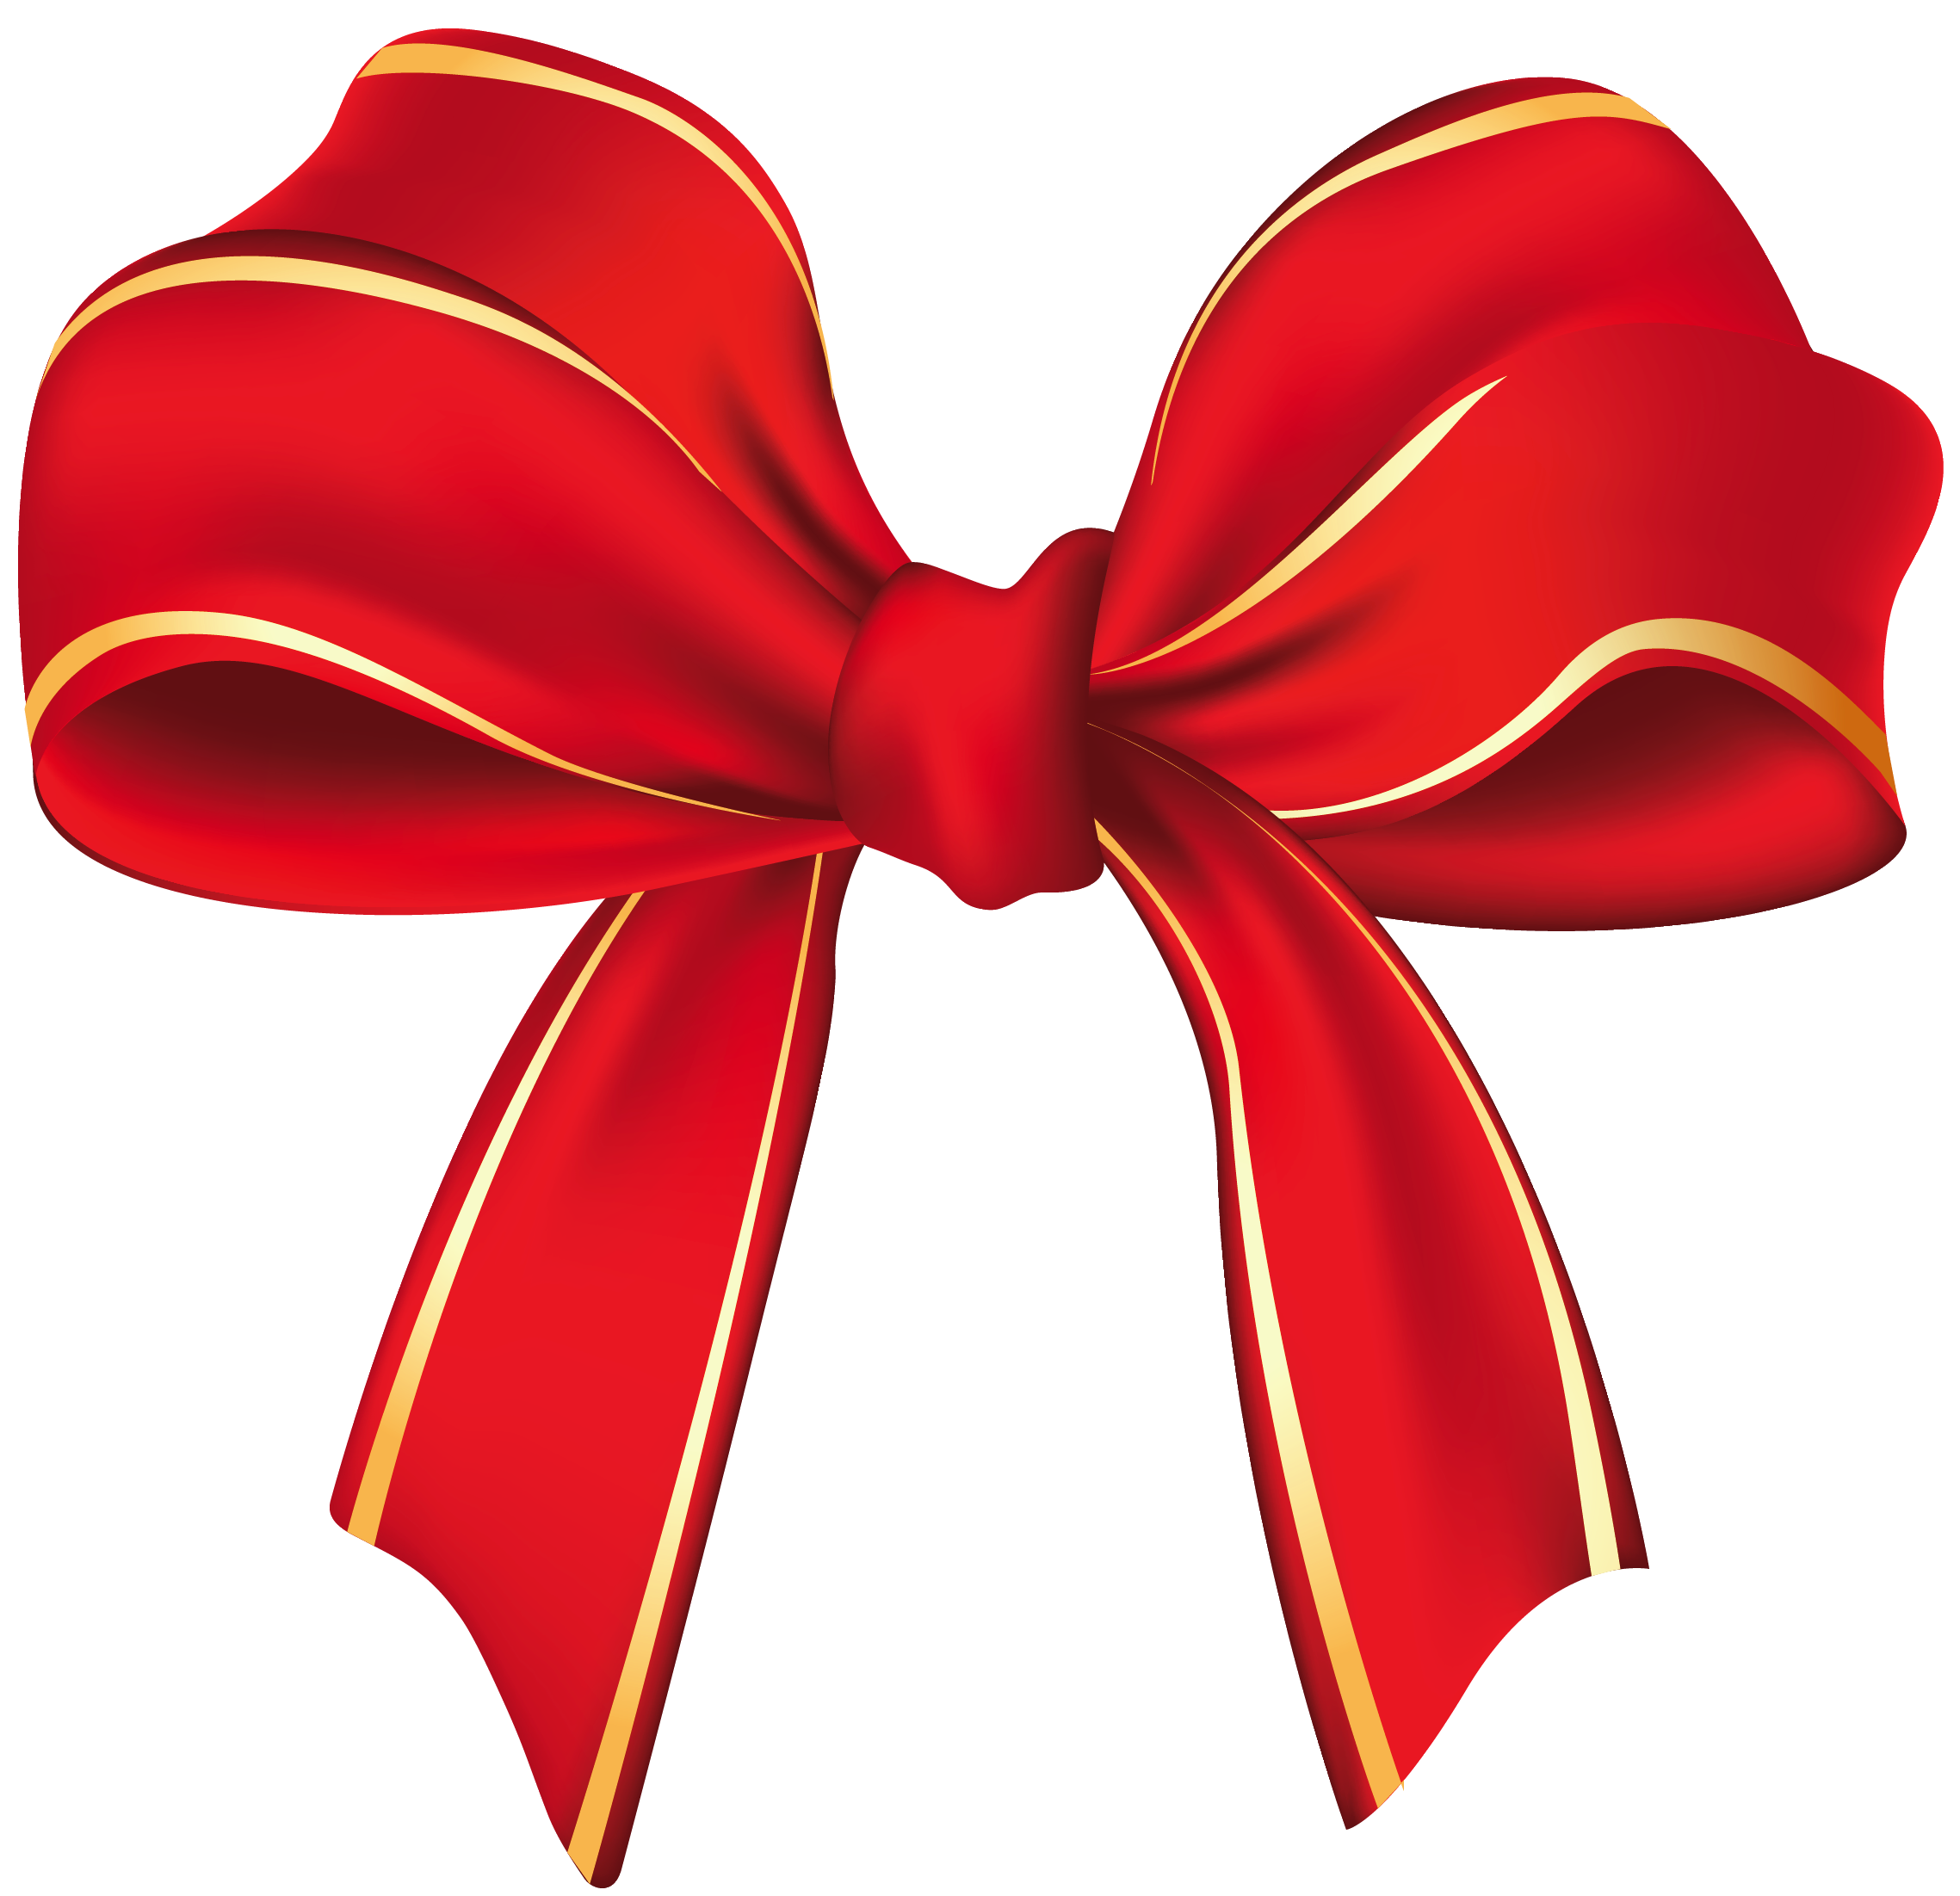 Red christmas bow clipart clip art library Free Christmas Bow Cliparts, Download Free Clip Art, Free Clip Art ... clip art library